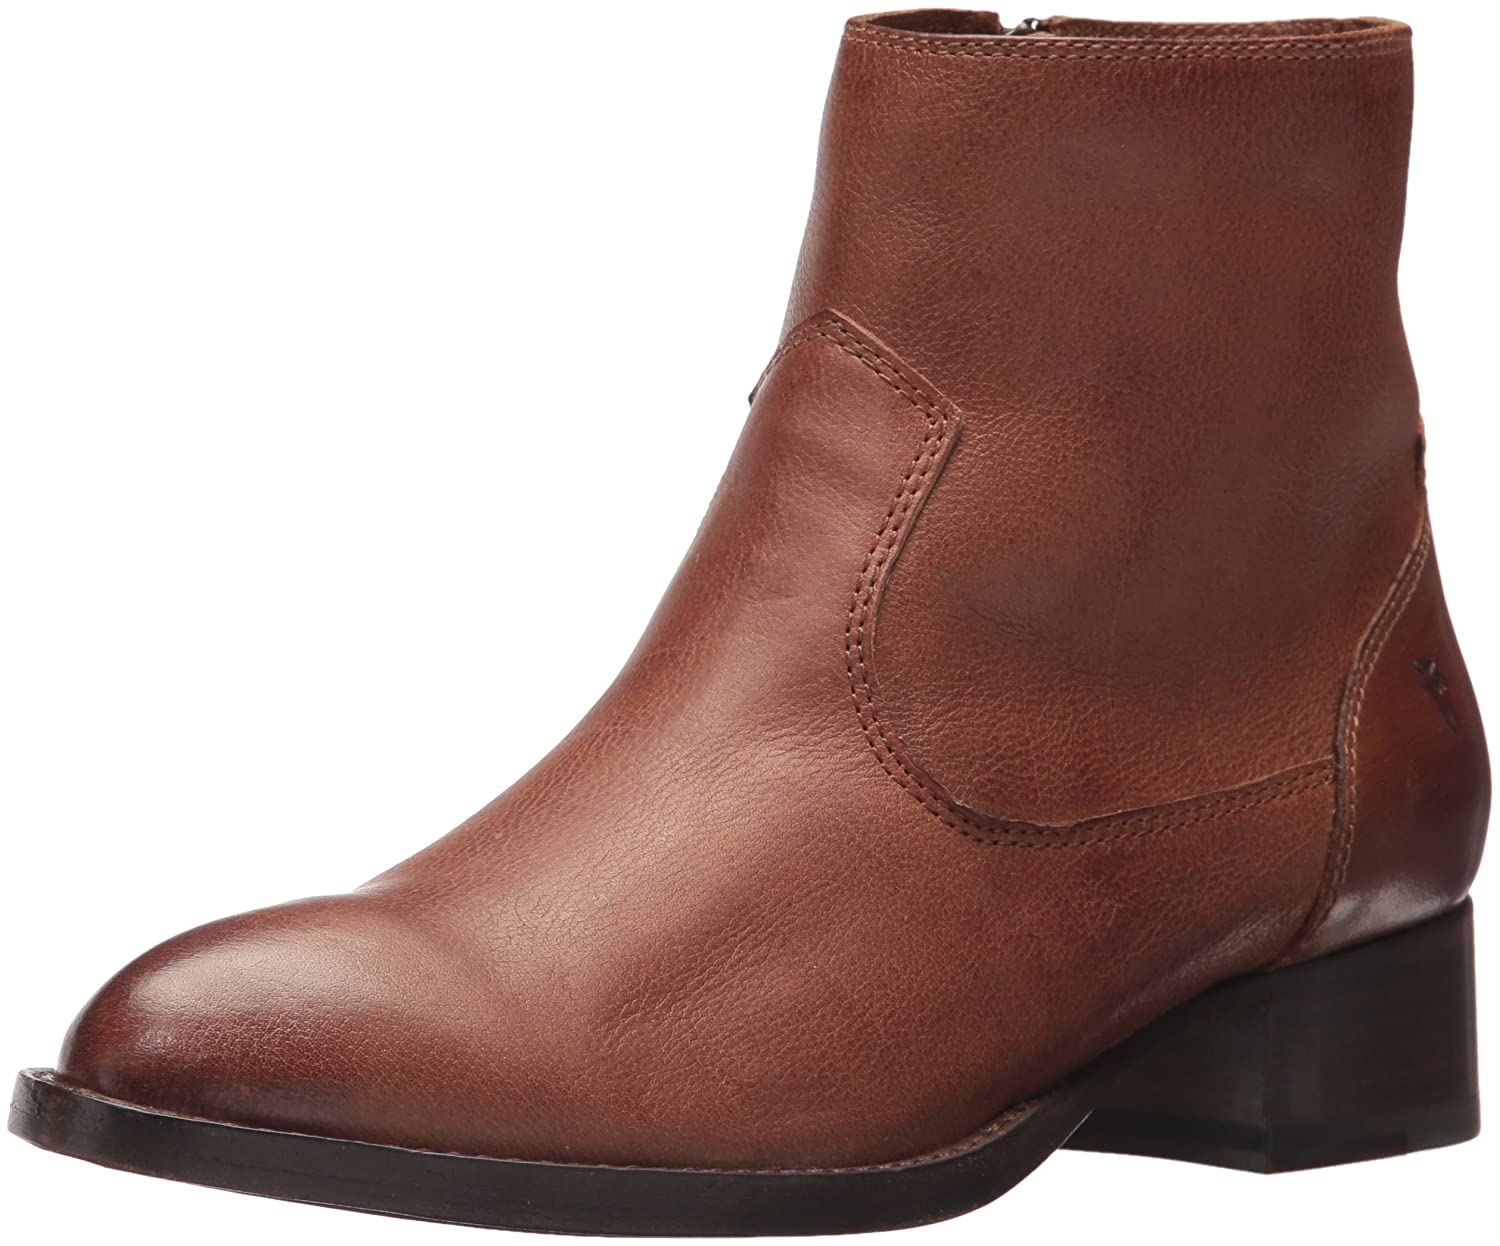 FRYE Women's Brooke Short Inside Zip Ankle Bootie B01MV2OSZU 8.5 B(M) US|Cognac